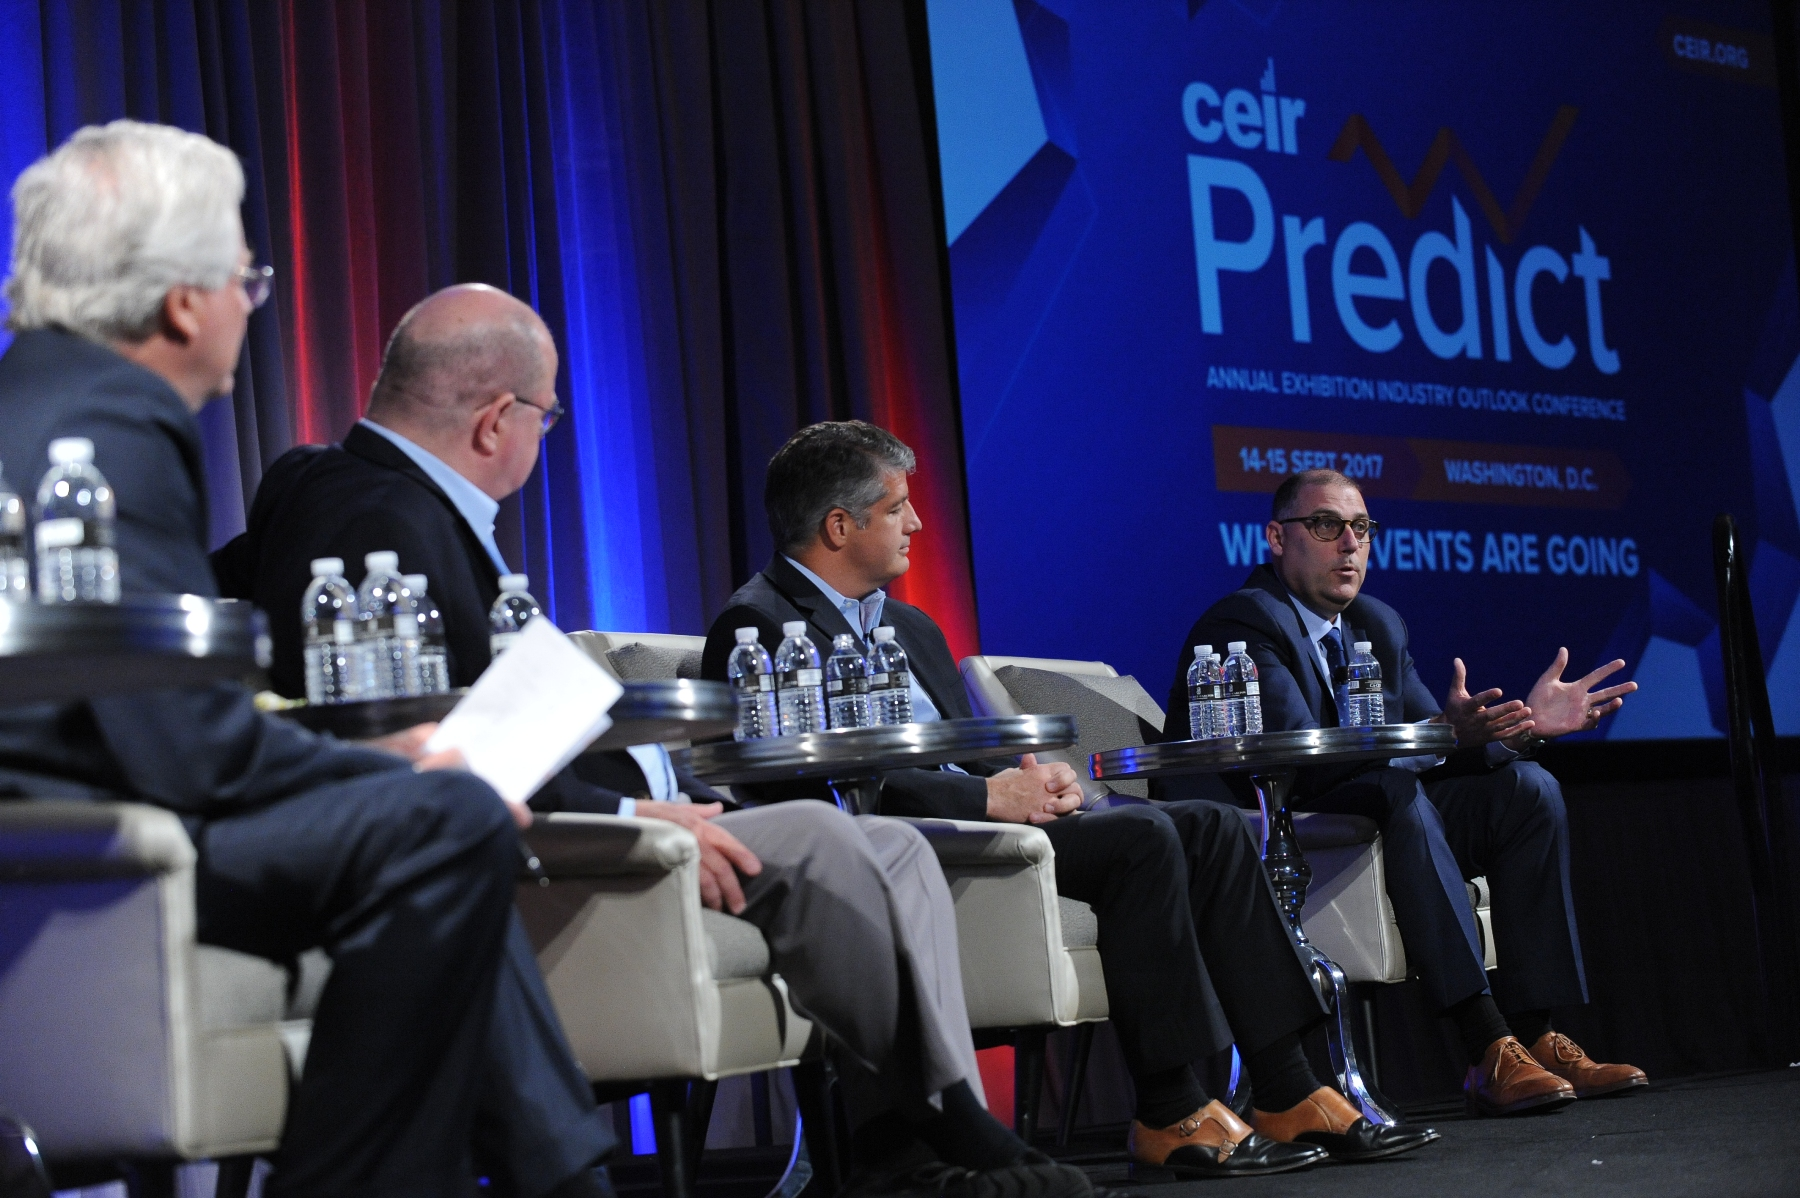 ceir-report-2019-negative-impact-us-trade-tariffs-event-industry